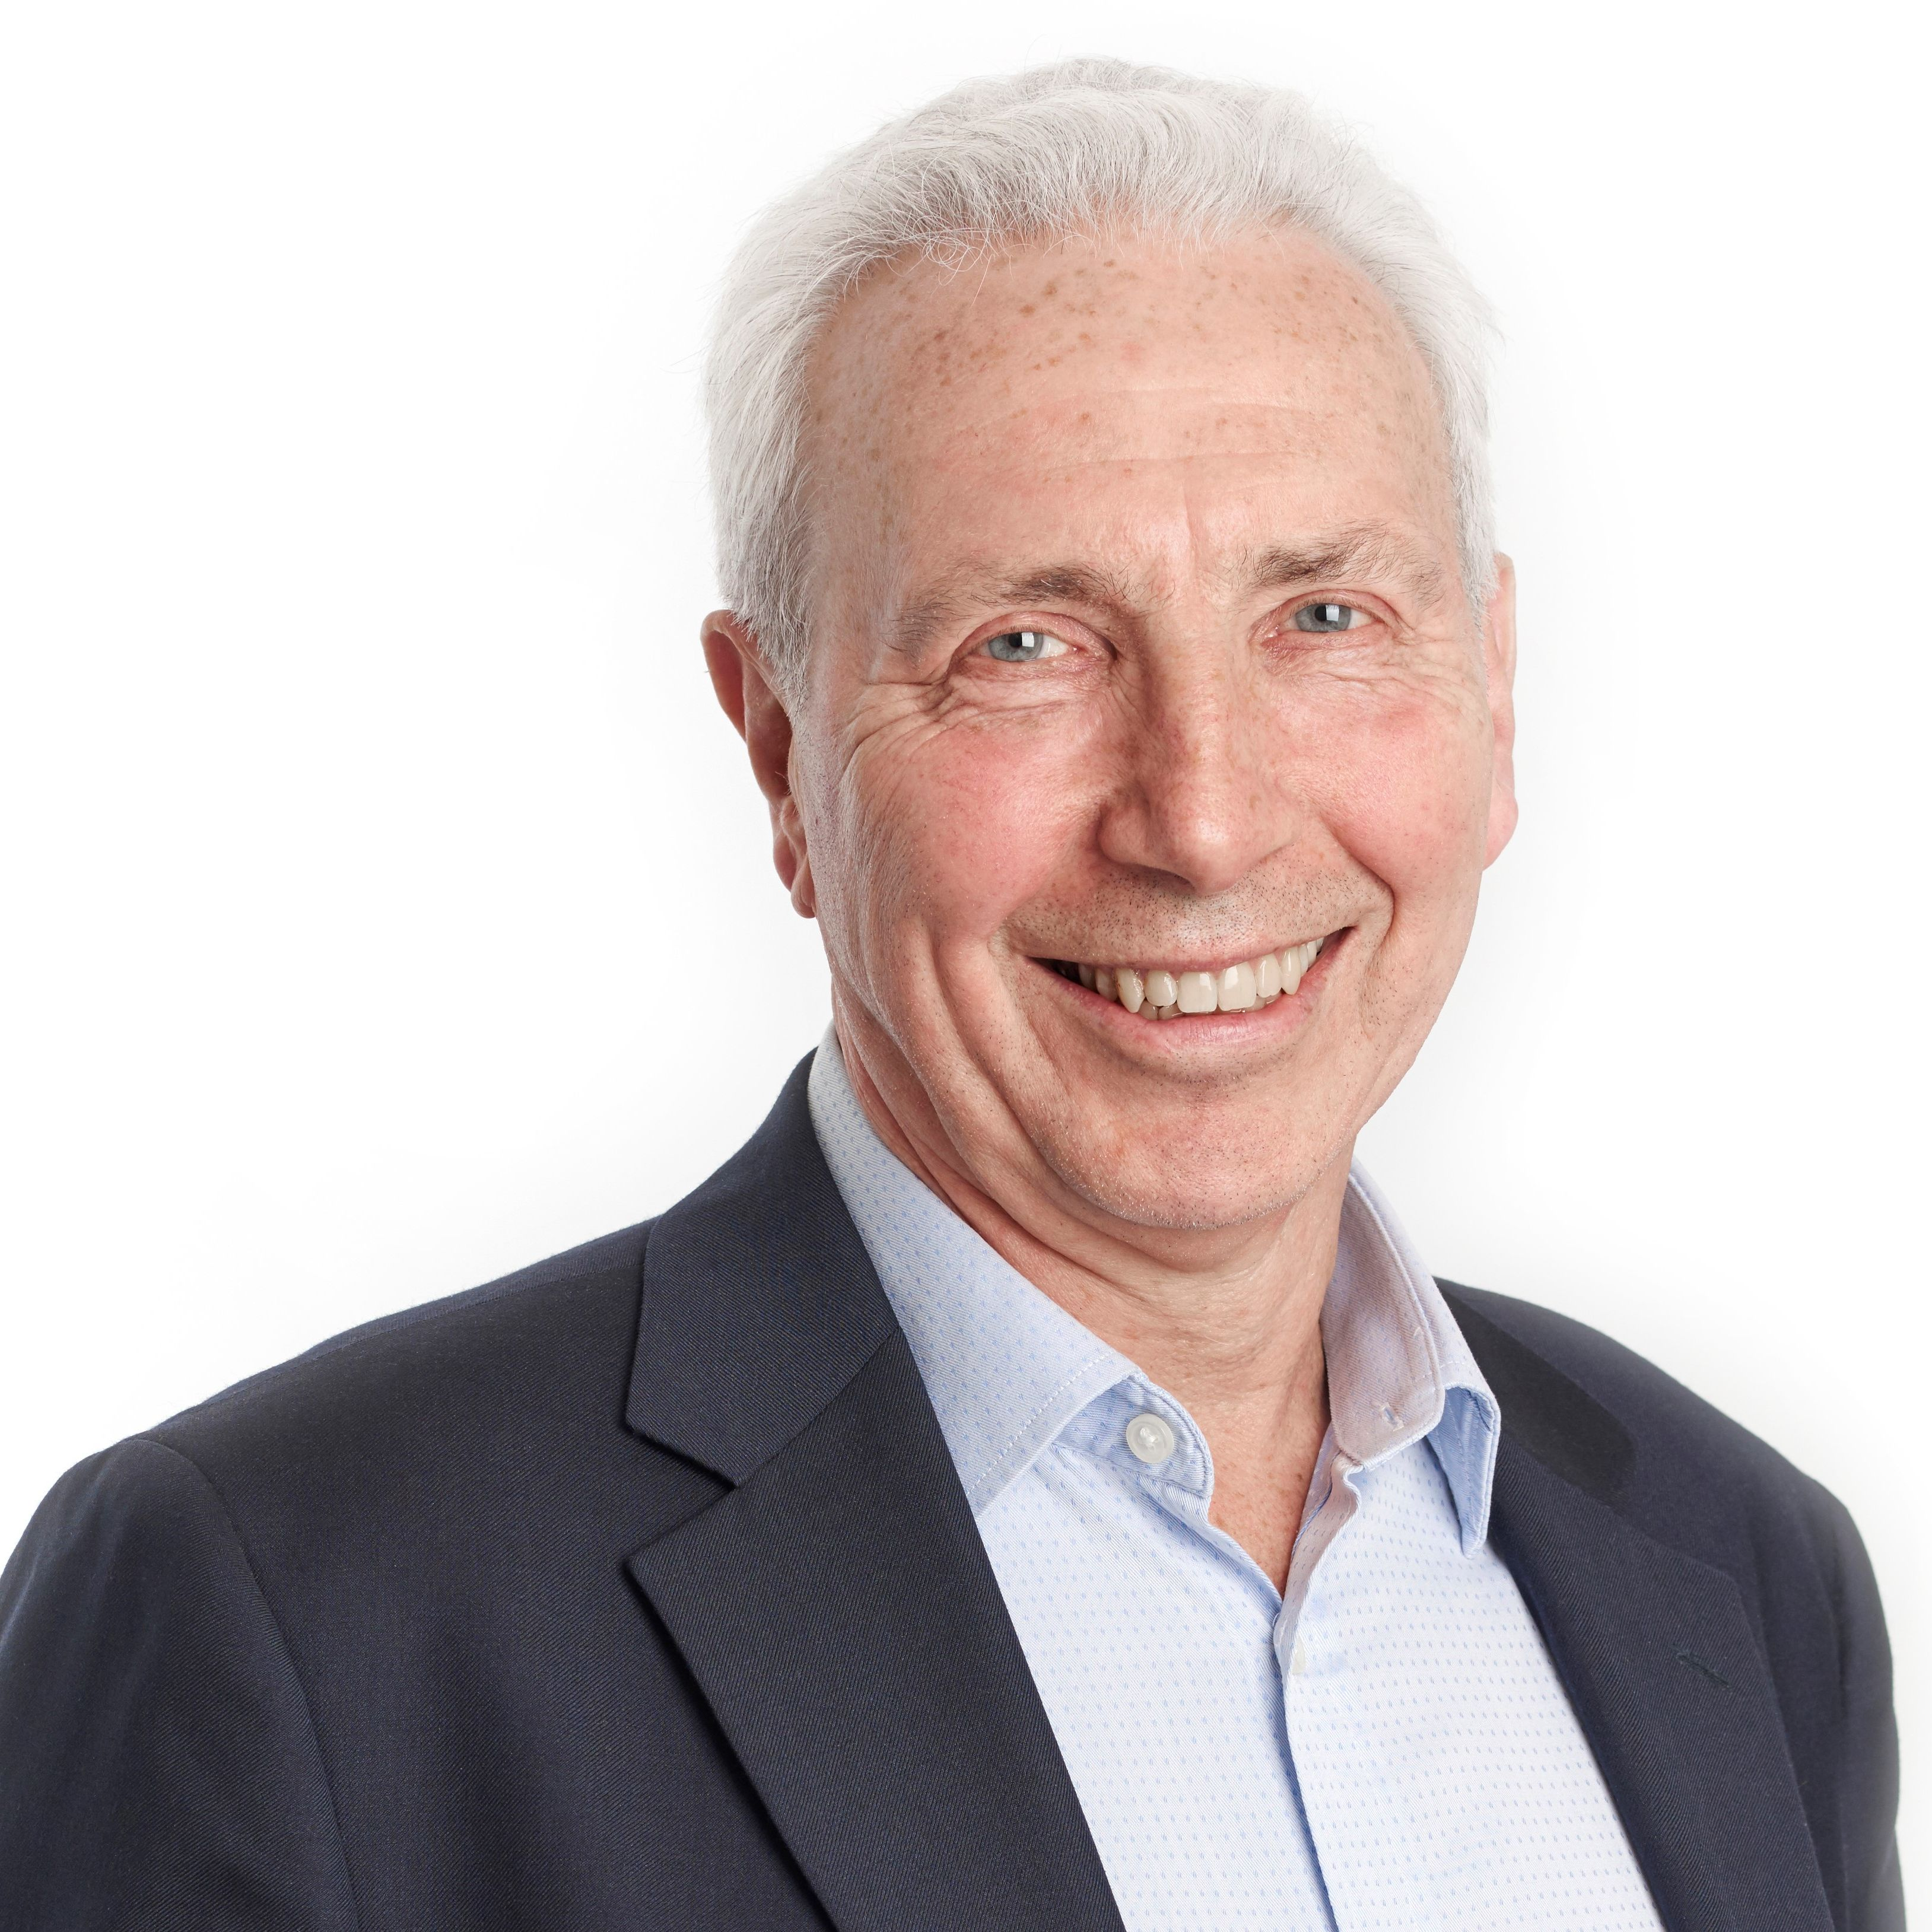 Profile photo of Alan Newman, Non-Executive Director and Chair of the Audit Committee at Future